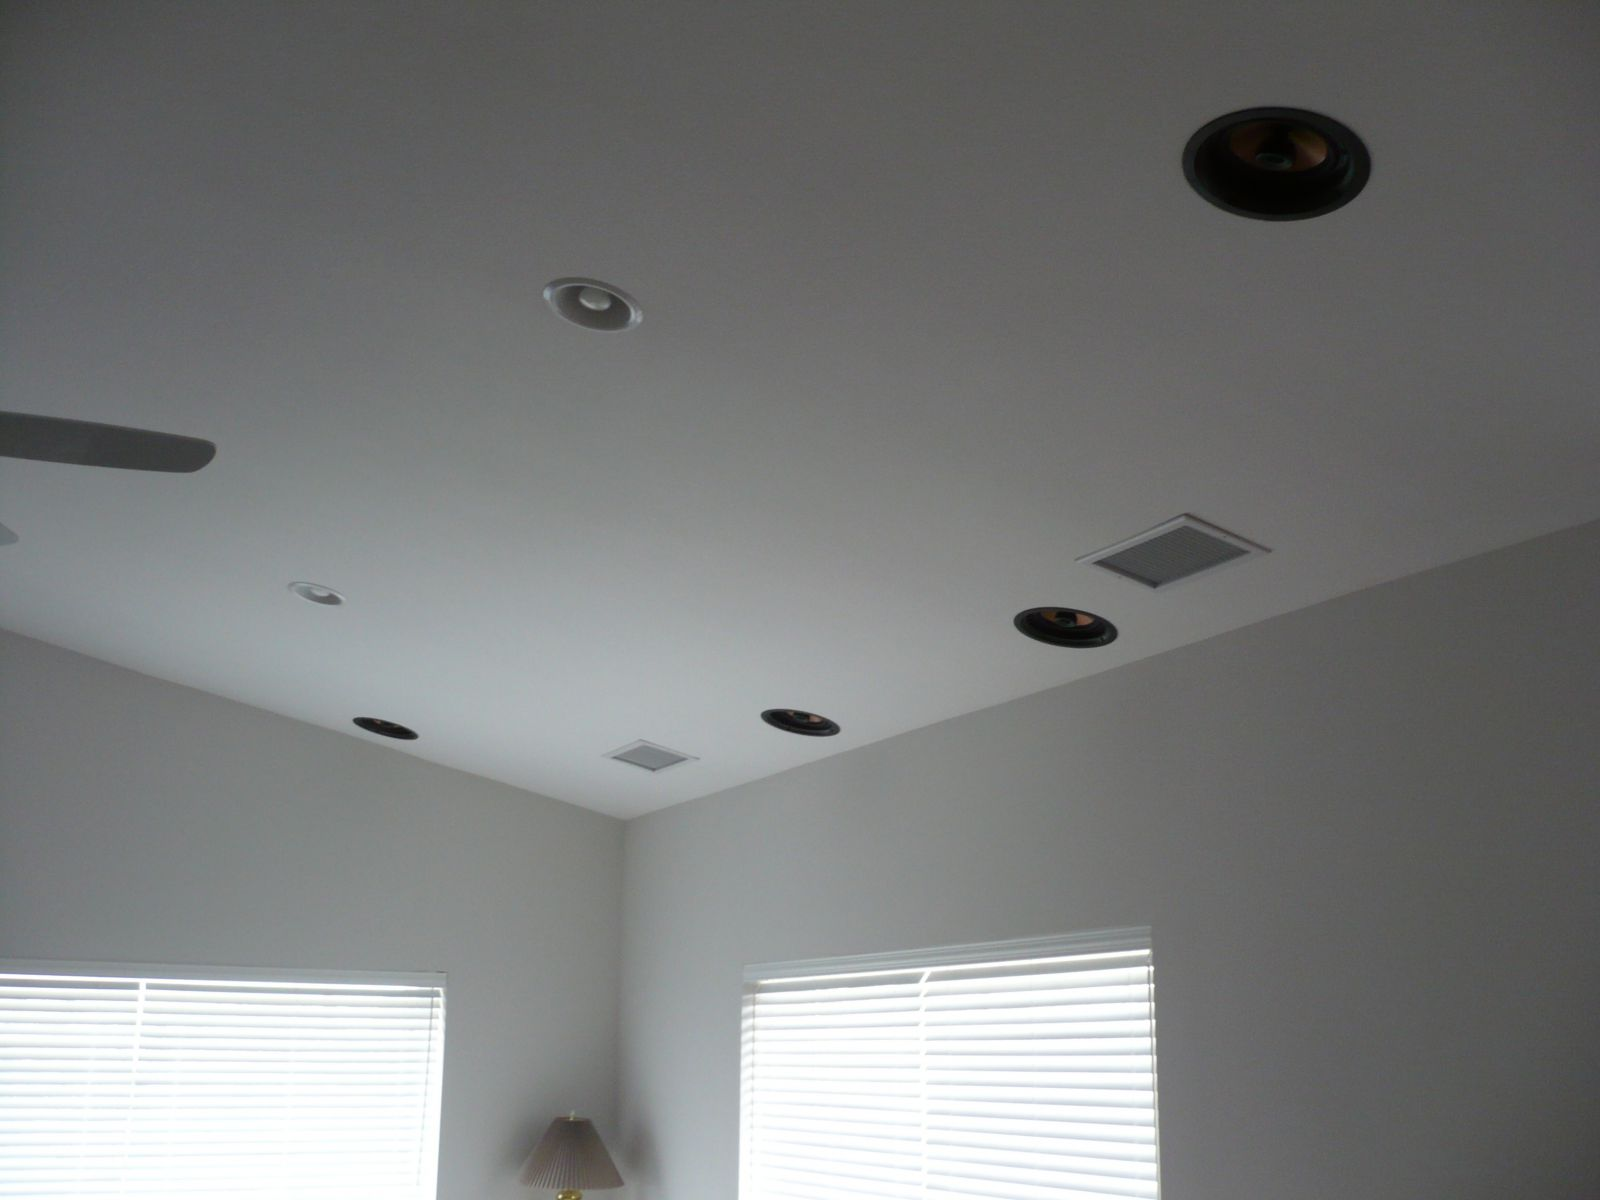 In Ceiling speaks doing side and rear surround duty